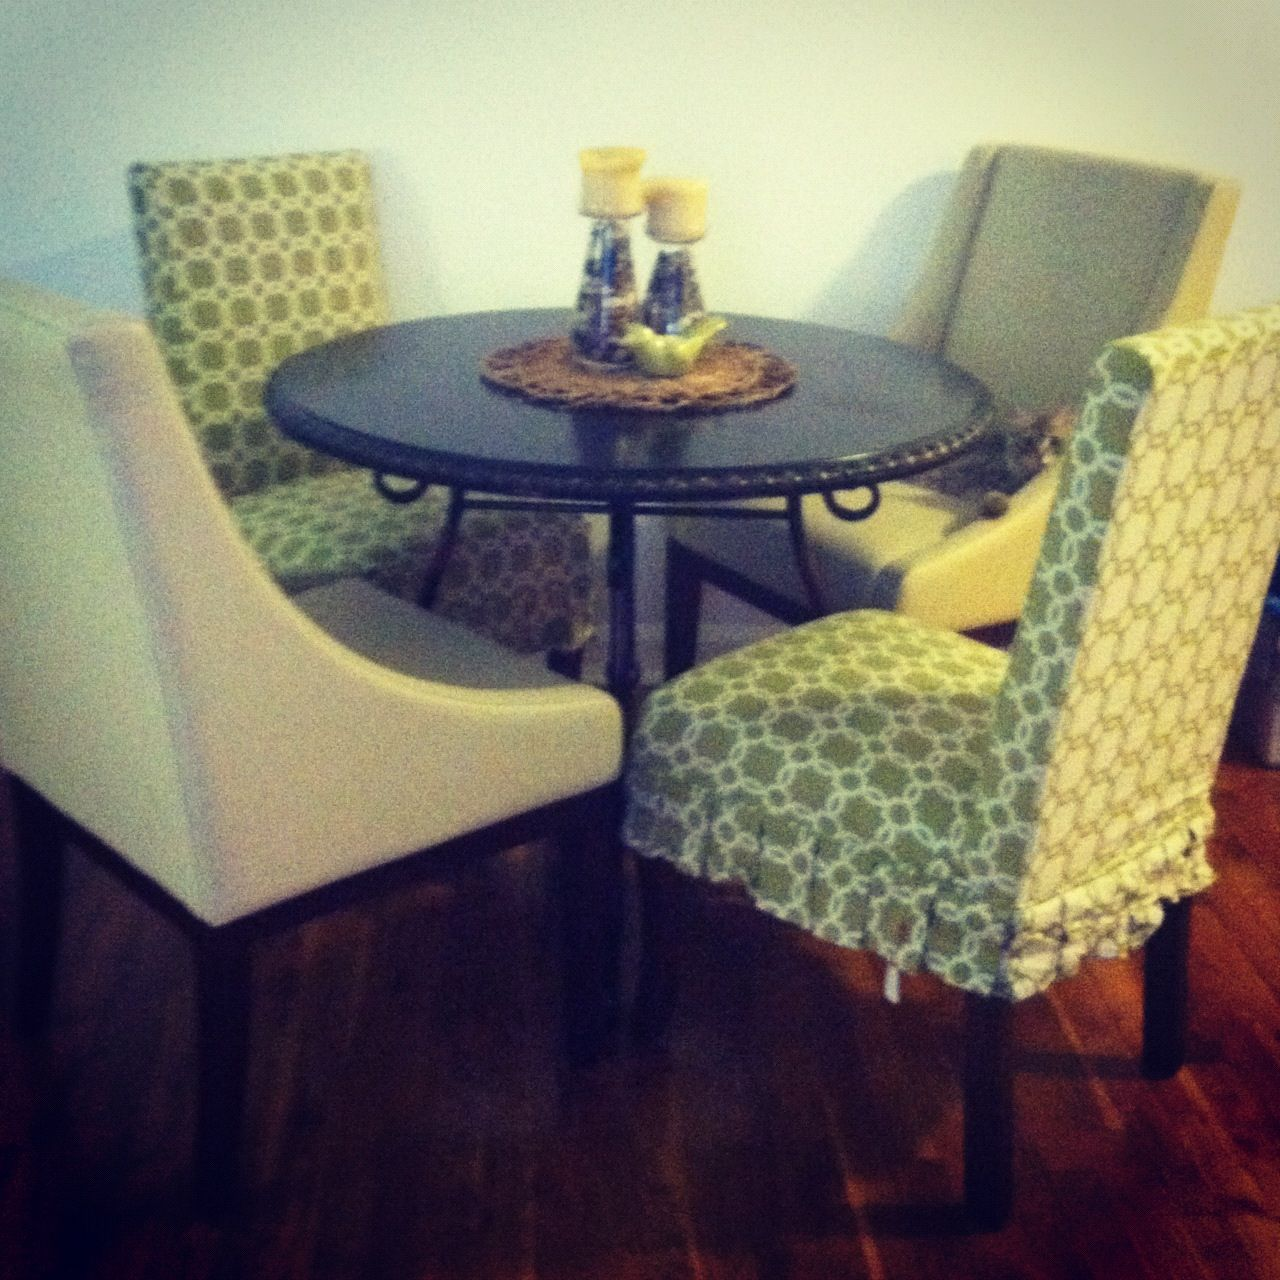 Superior Pier 1 Ashmont Dining Table And Dana Parsons Chairs With Slip Covers  @pier1imports